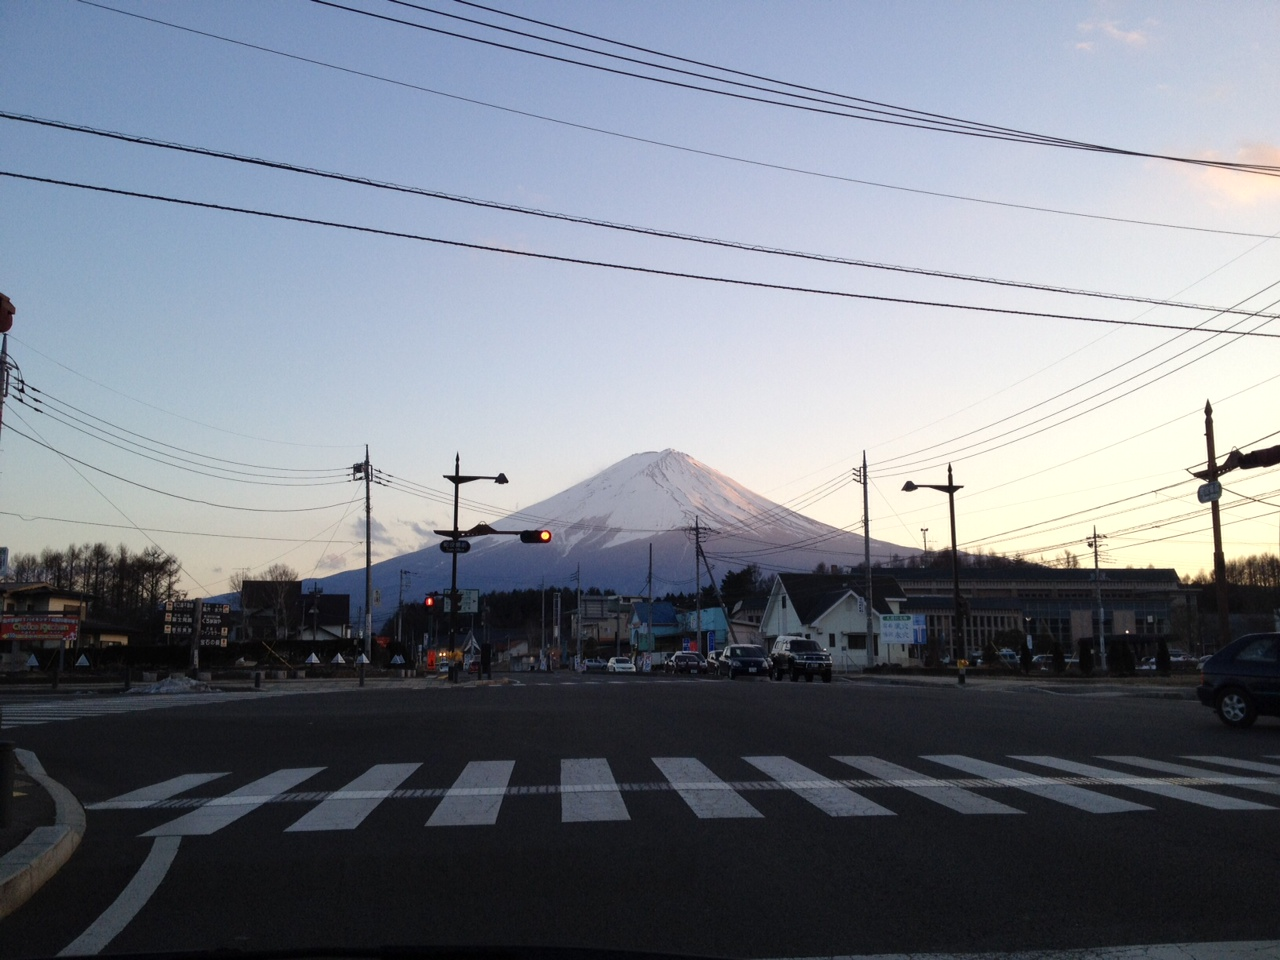 Is Mt. Fuji About to Blow Its Top?